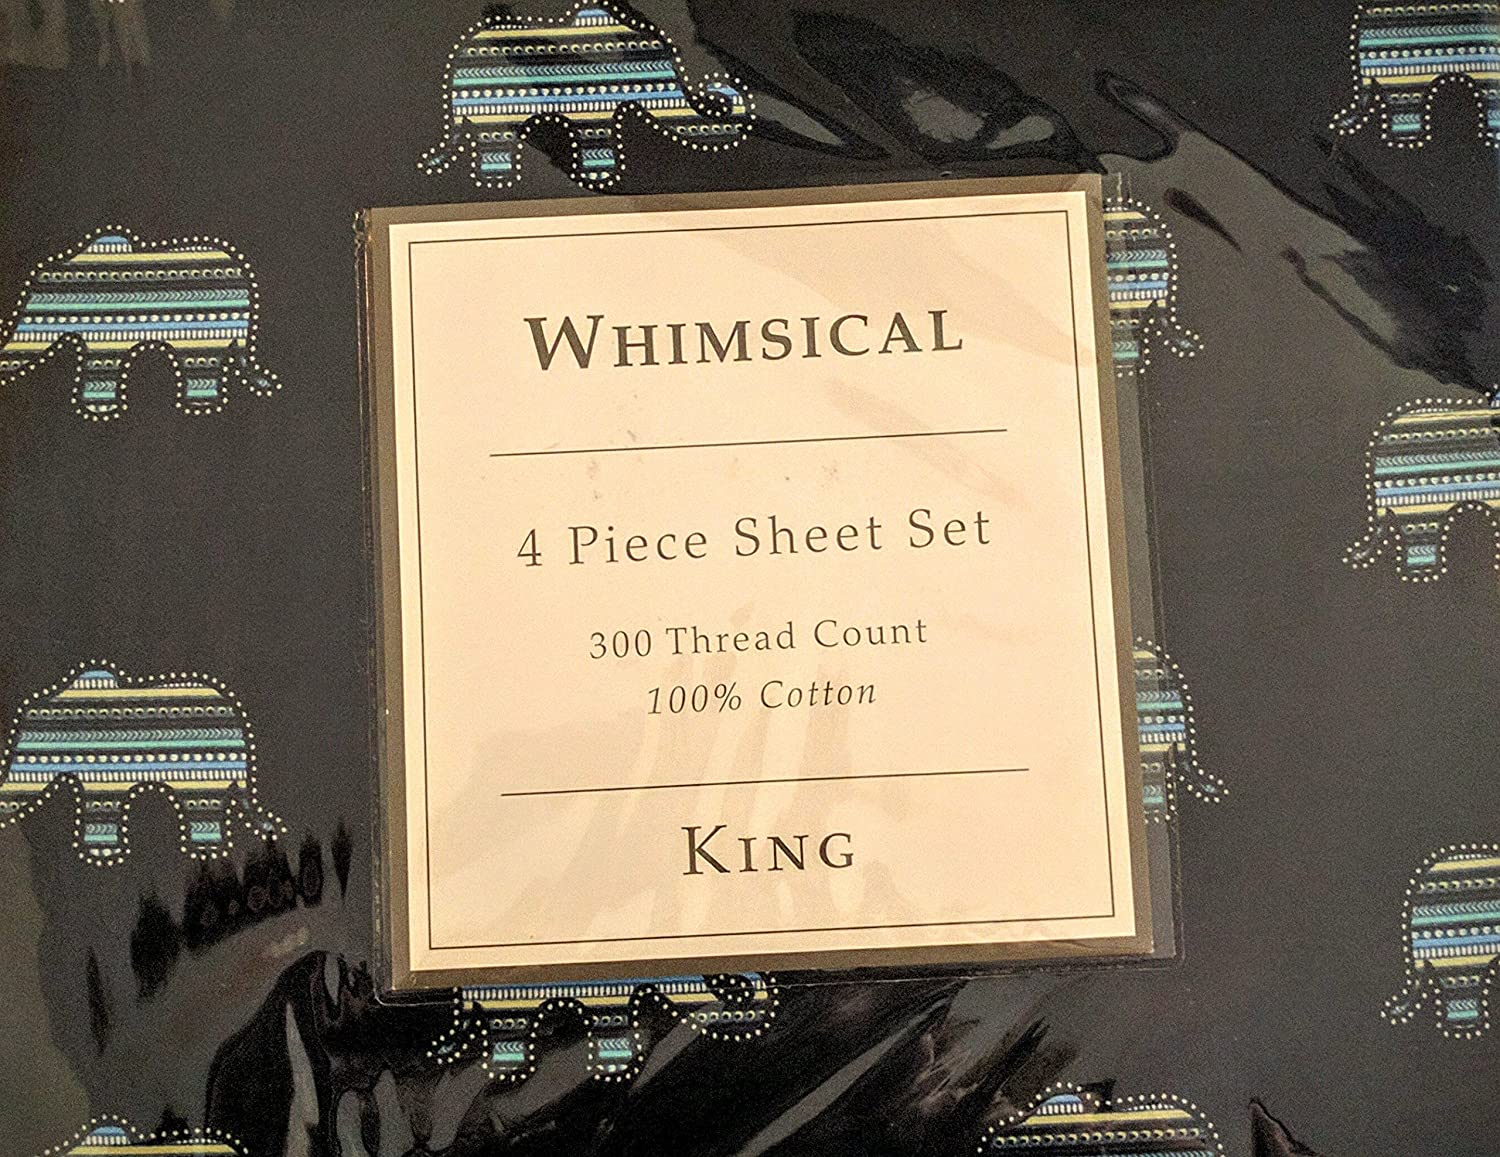 Elite Home Products Whimsical Animal Print 300 Thread Count Cotton Sheet Set